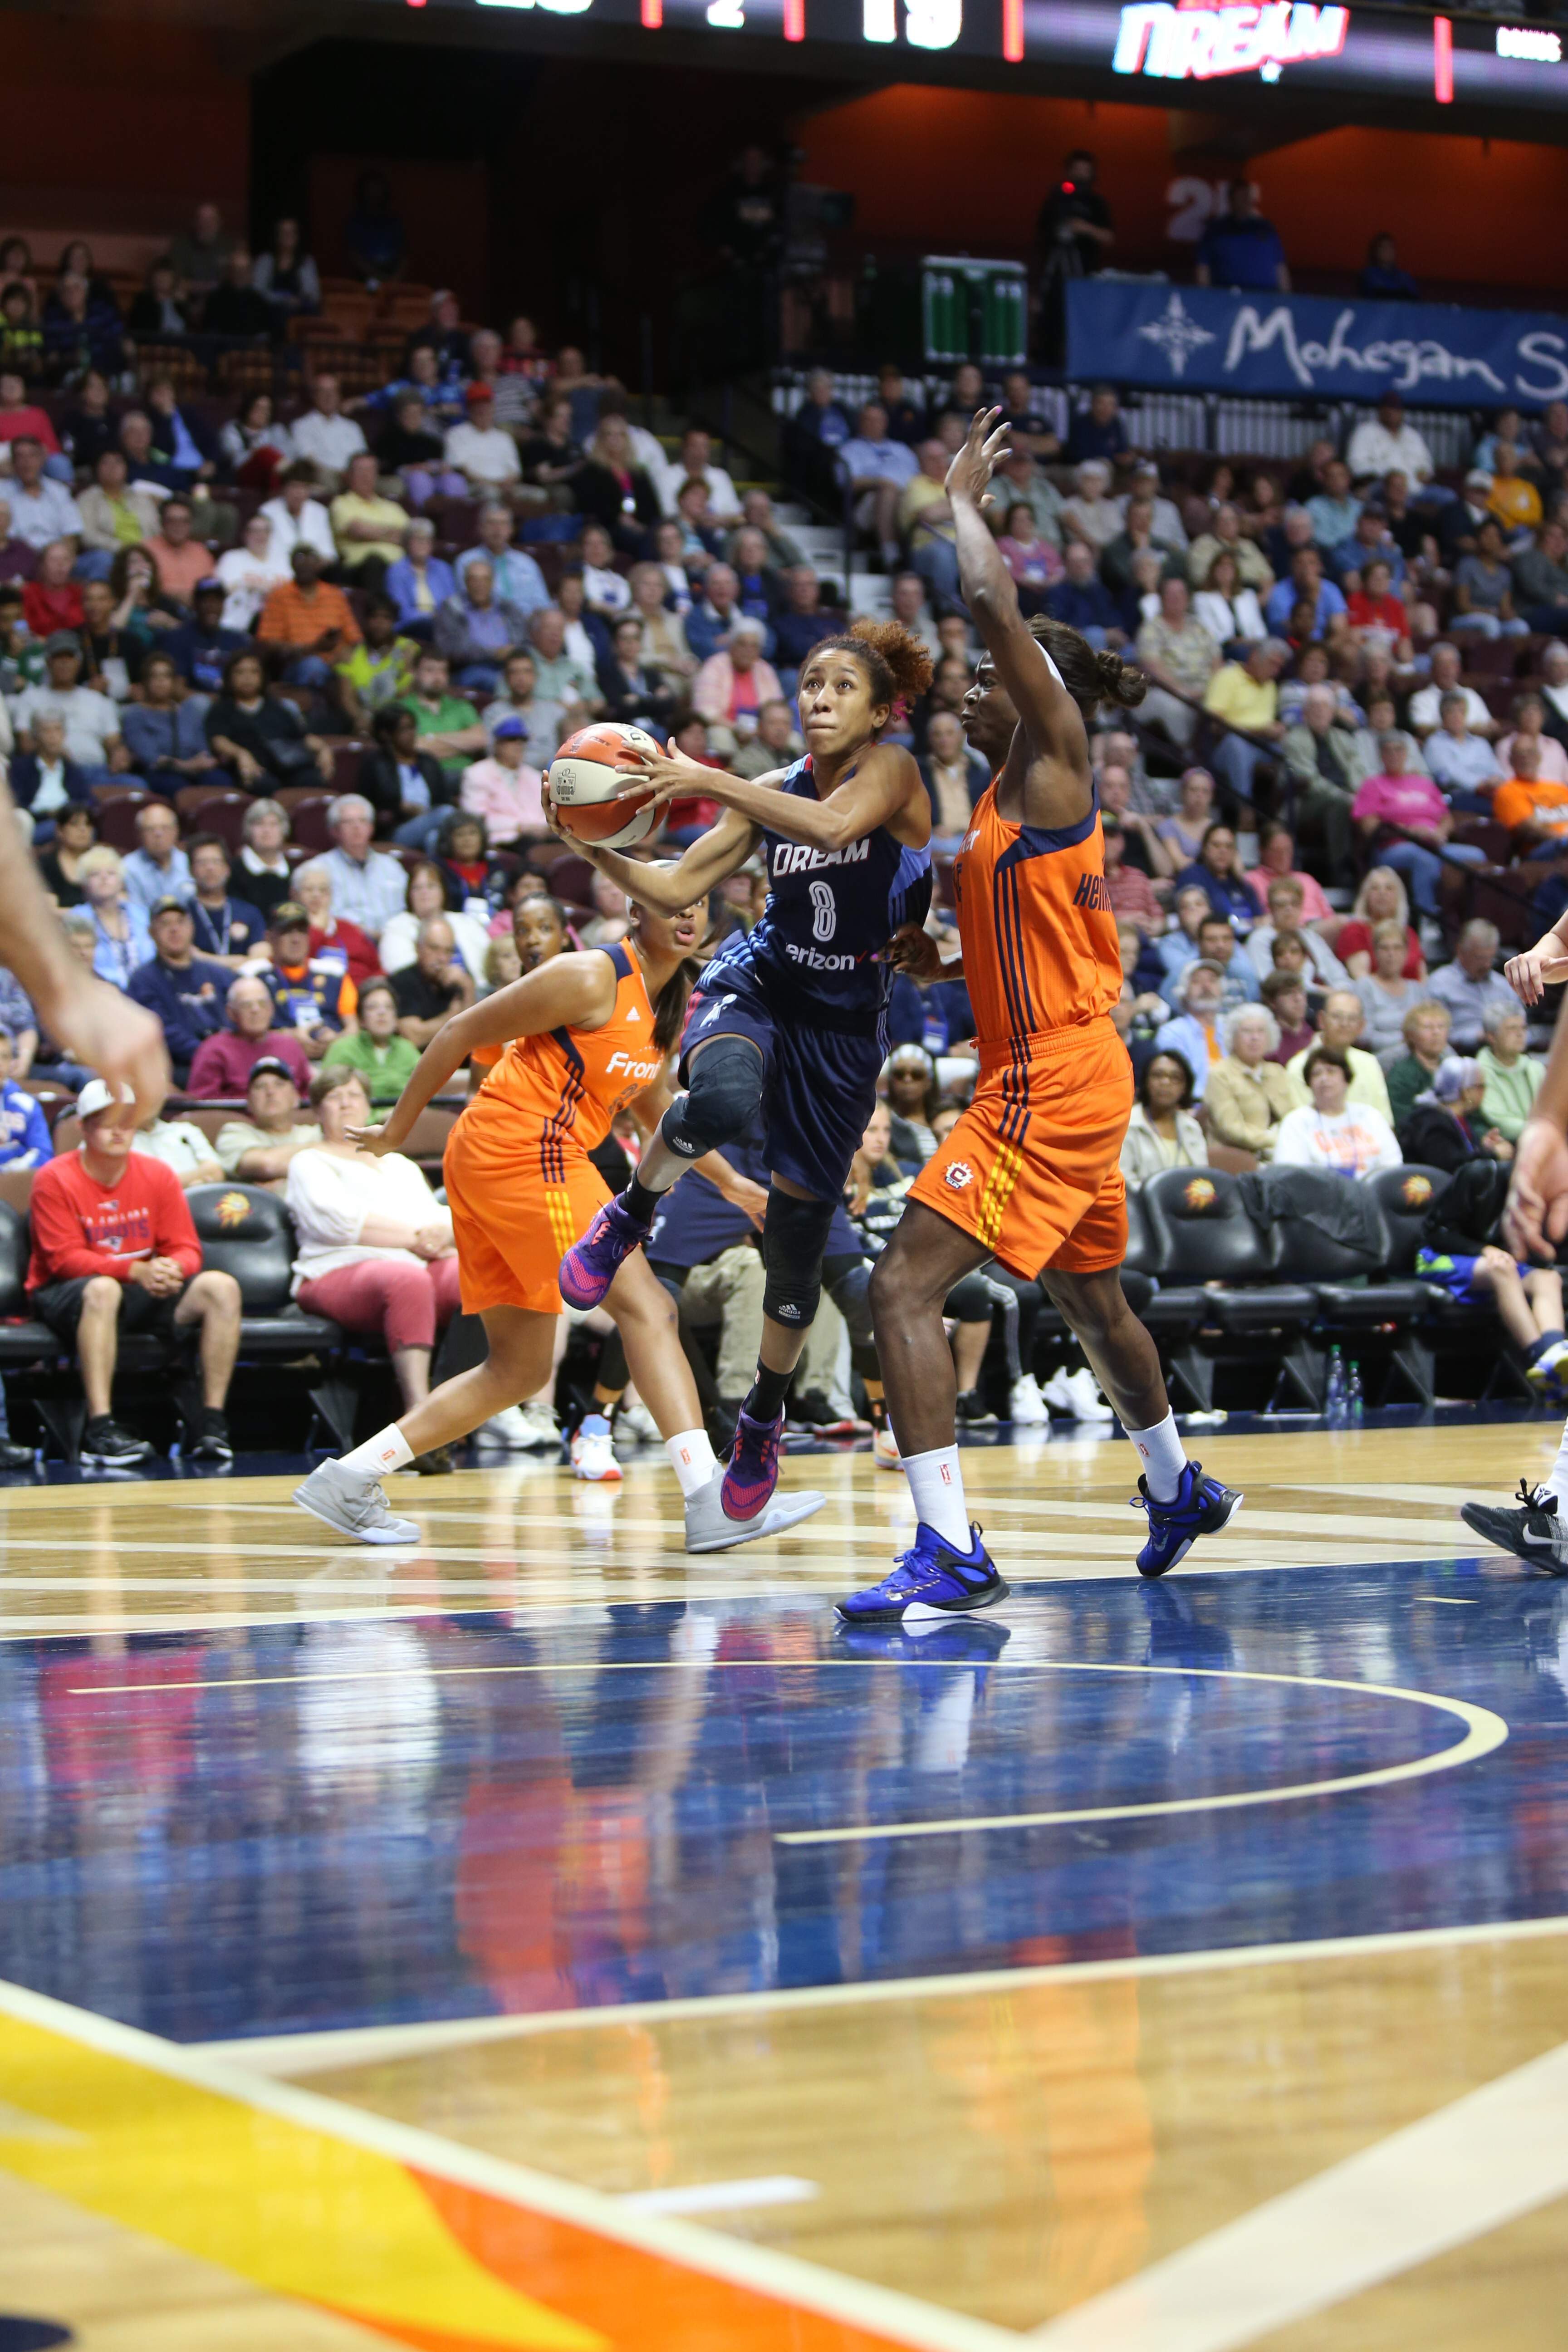 UNCASVILLE, CT - JUNE 3: Carla Cortijo #8 of the Atlanta Dream handles the ball against the Connecticut Sun on June 3, 2016 at Mohegan Sun Arena in Uncasville, CT. NOTE TO USER: User expressly acknowledges and agrees that, by downloading and or using this Photograph, user is consenting to the terms and conditions of the Getty Images License Agreement. Mandatory Copyright Notice: Copyright 2016 NBAE (Photo by Chris Marion/NBAE via Getty Images)